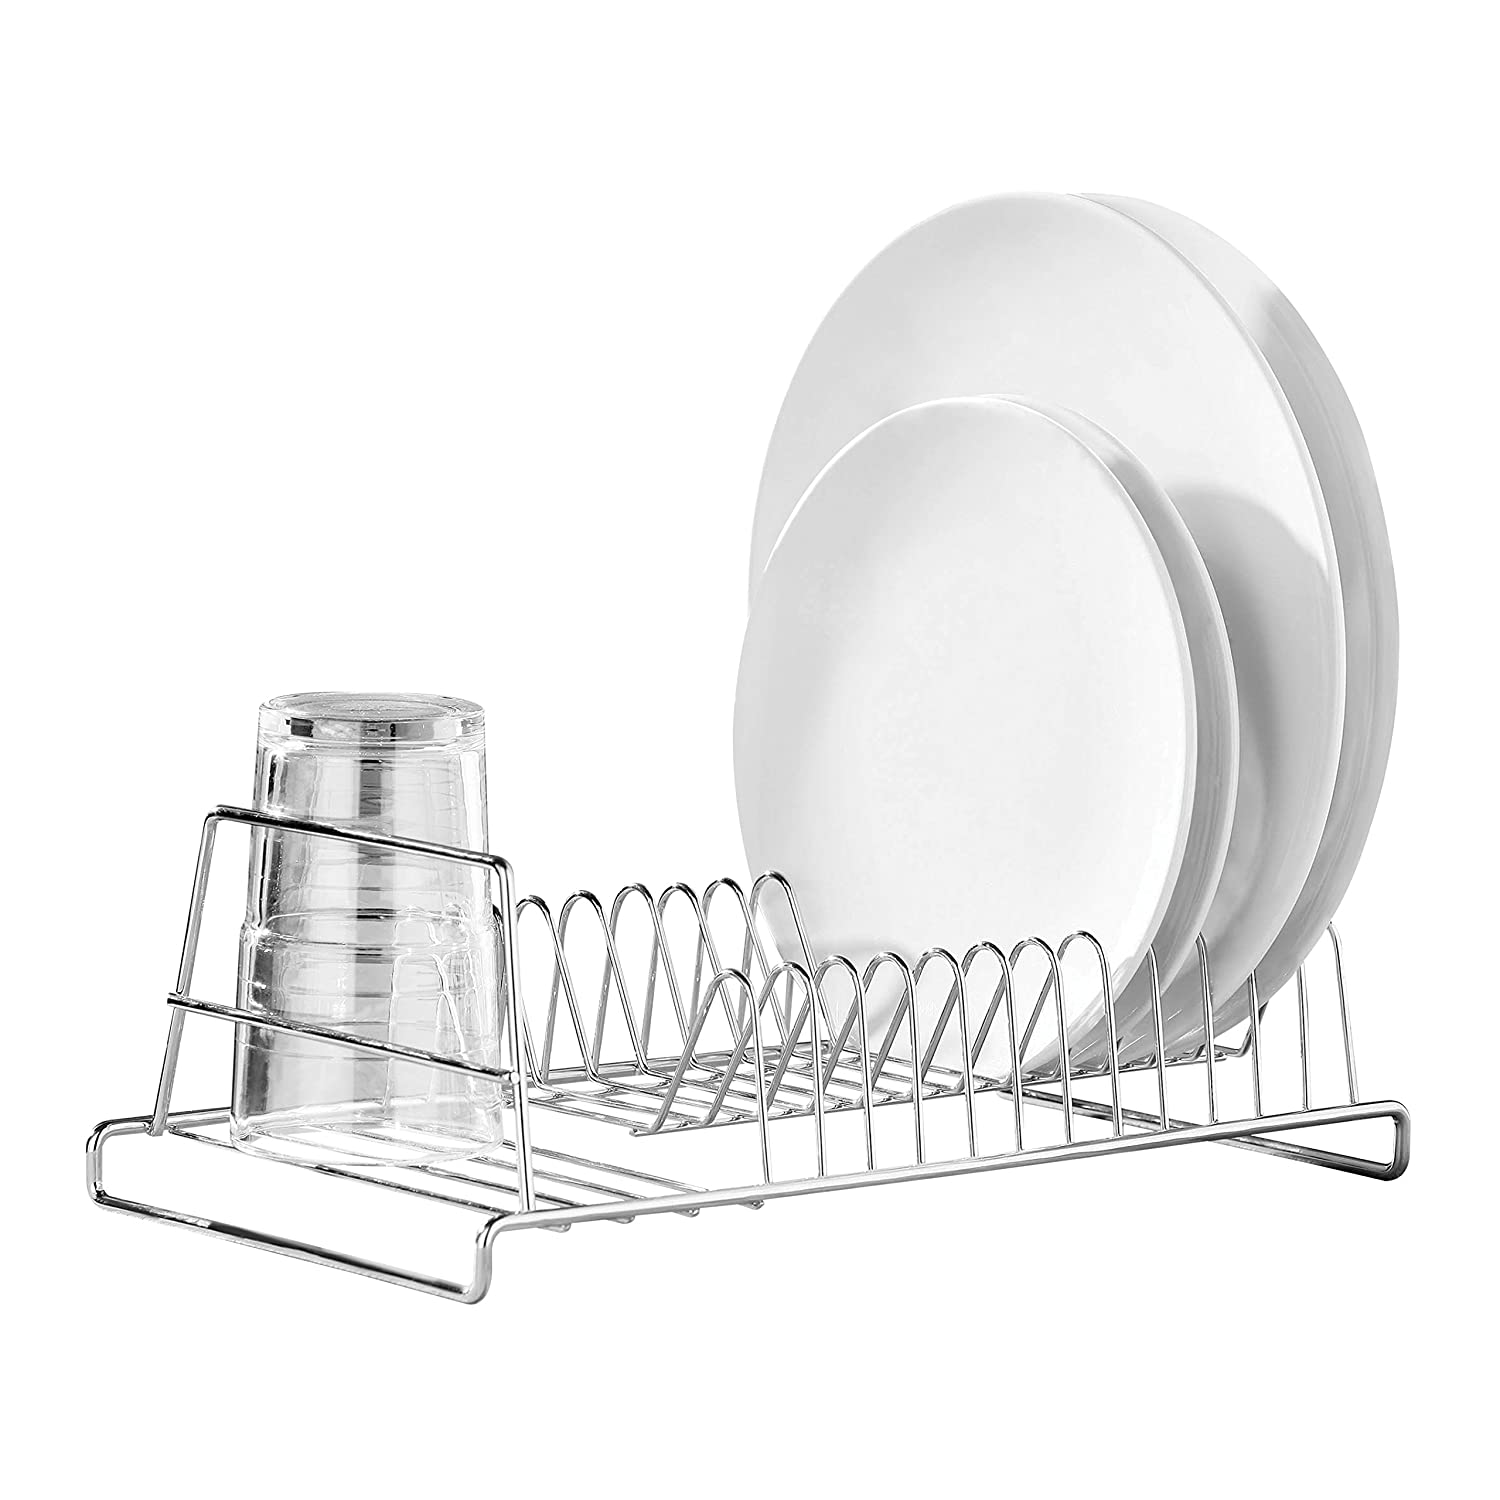 Top 10 Best Dish Drying Racks Reviews 2016 2017 On